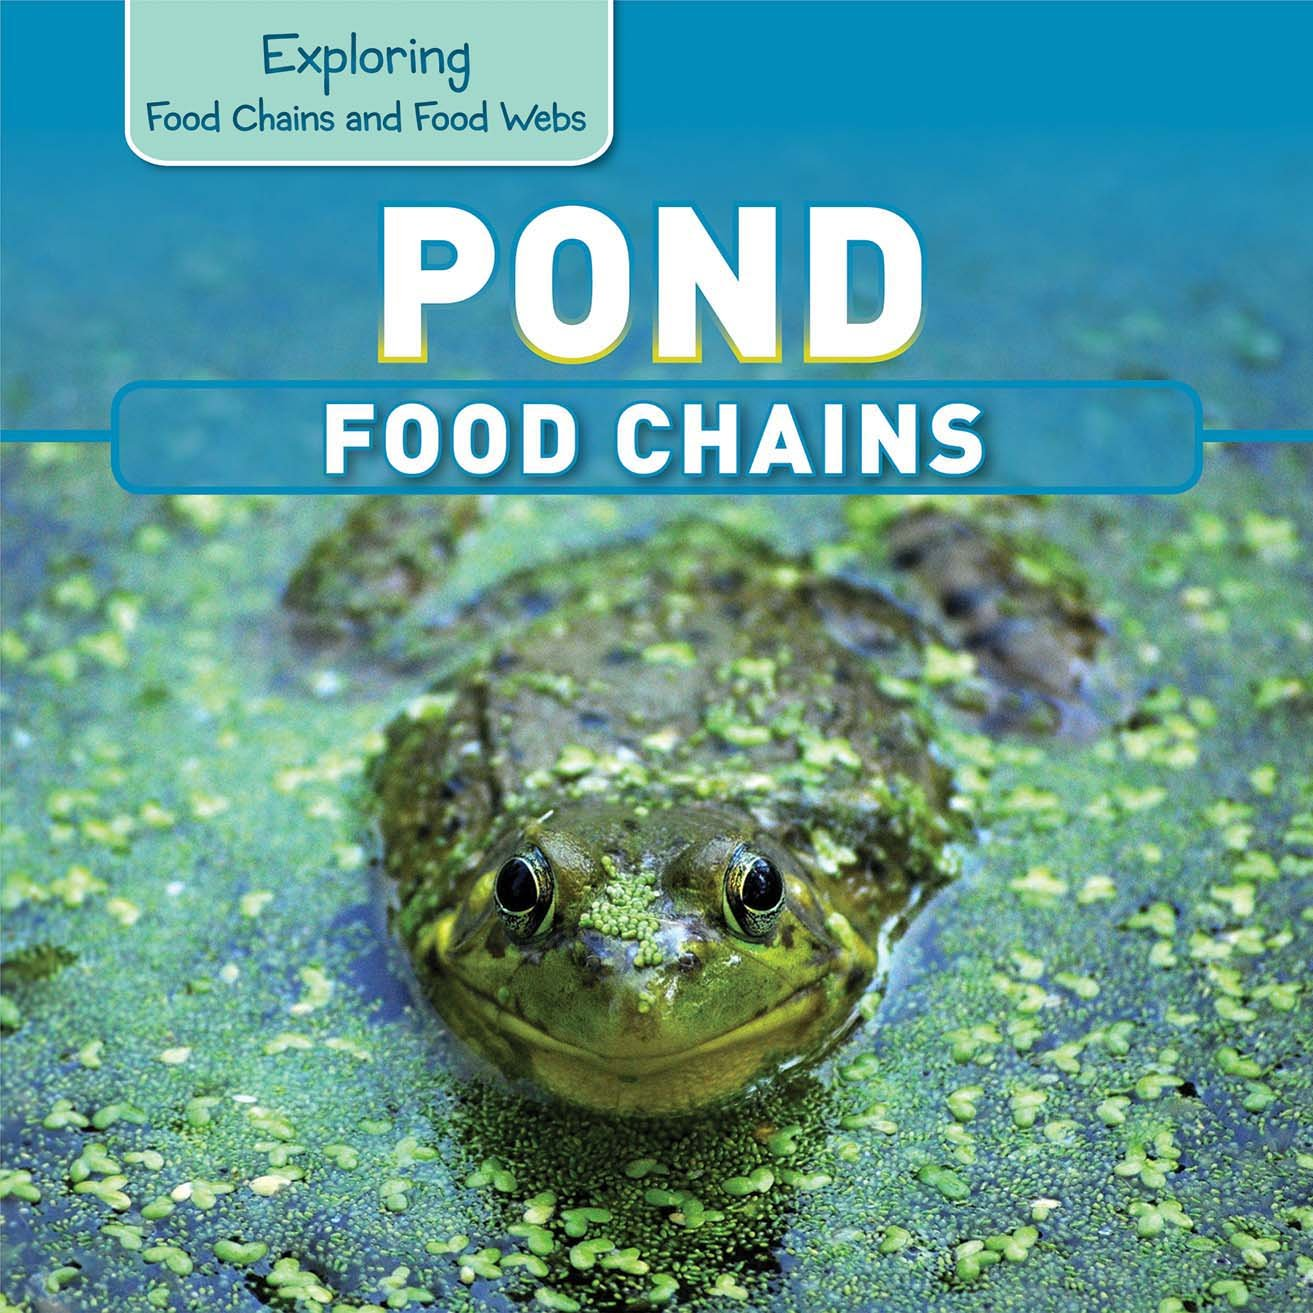 Pond Food Chains (Exploring Food Chains and Food Webs) pdf